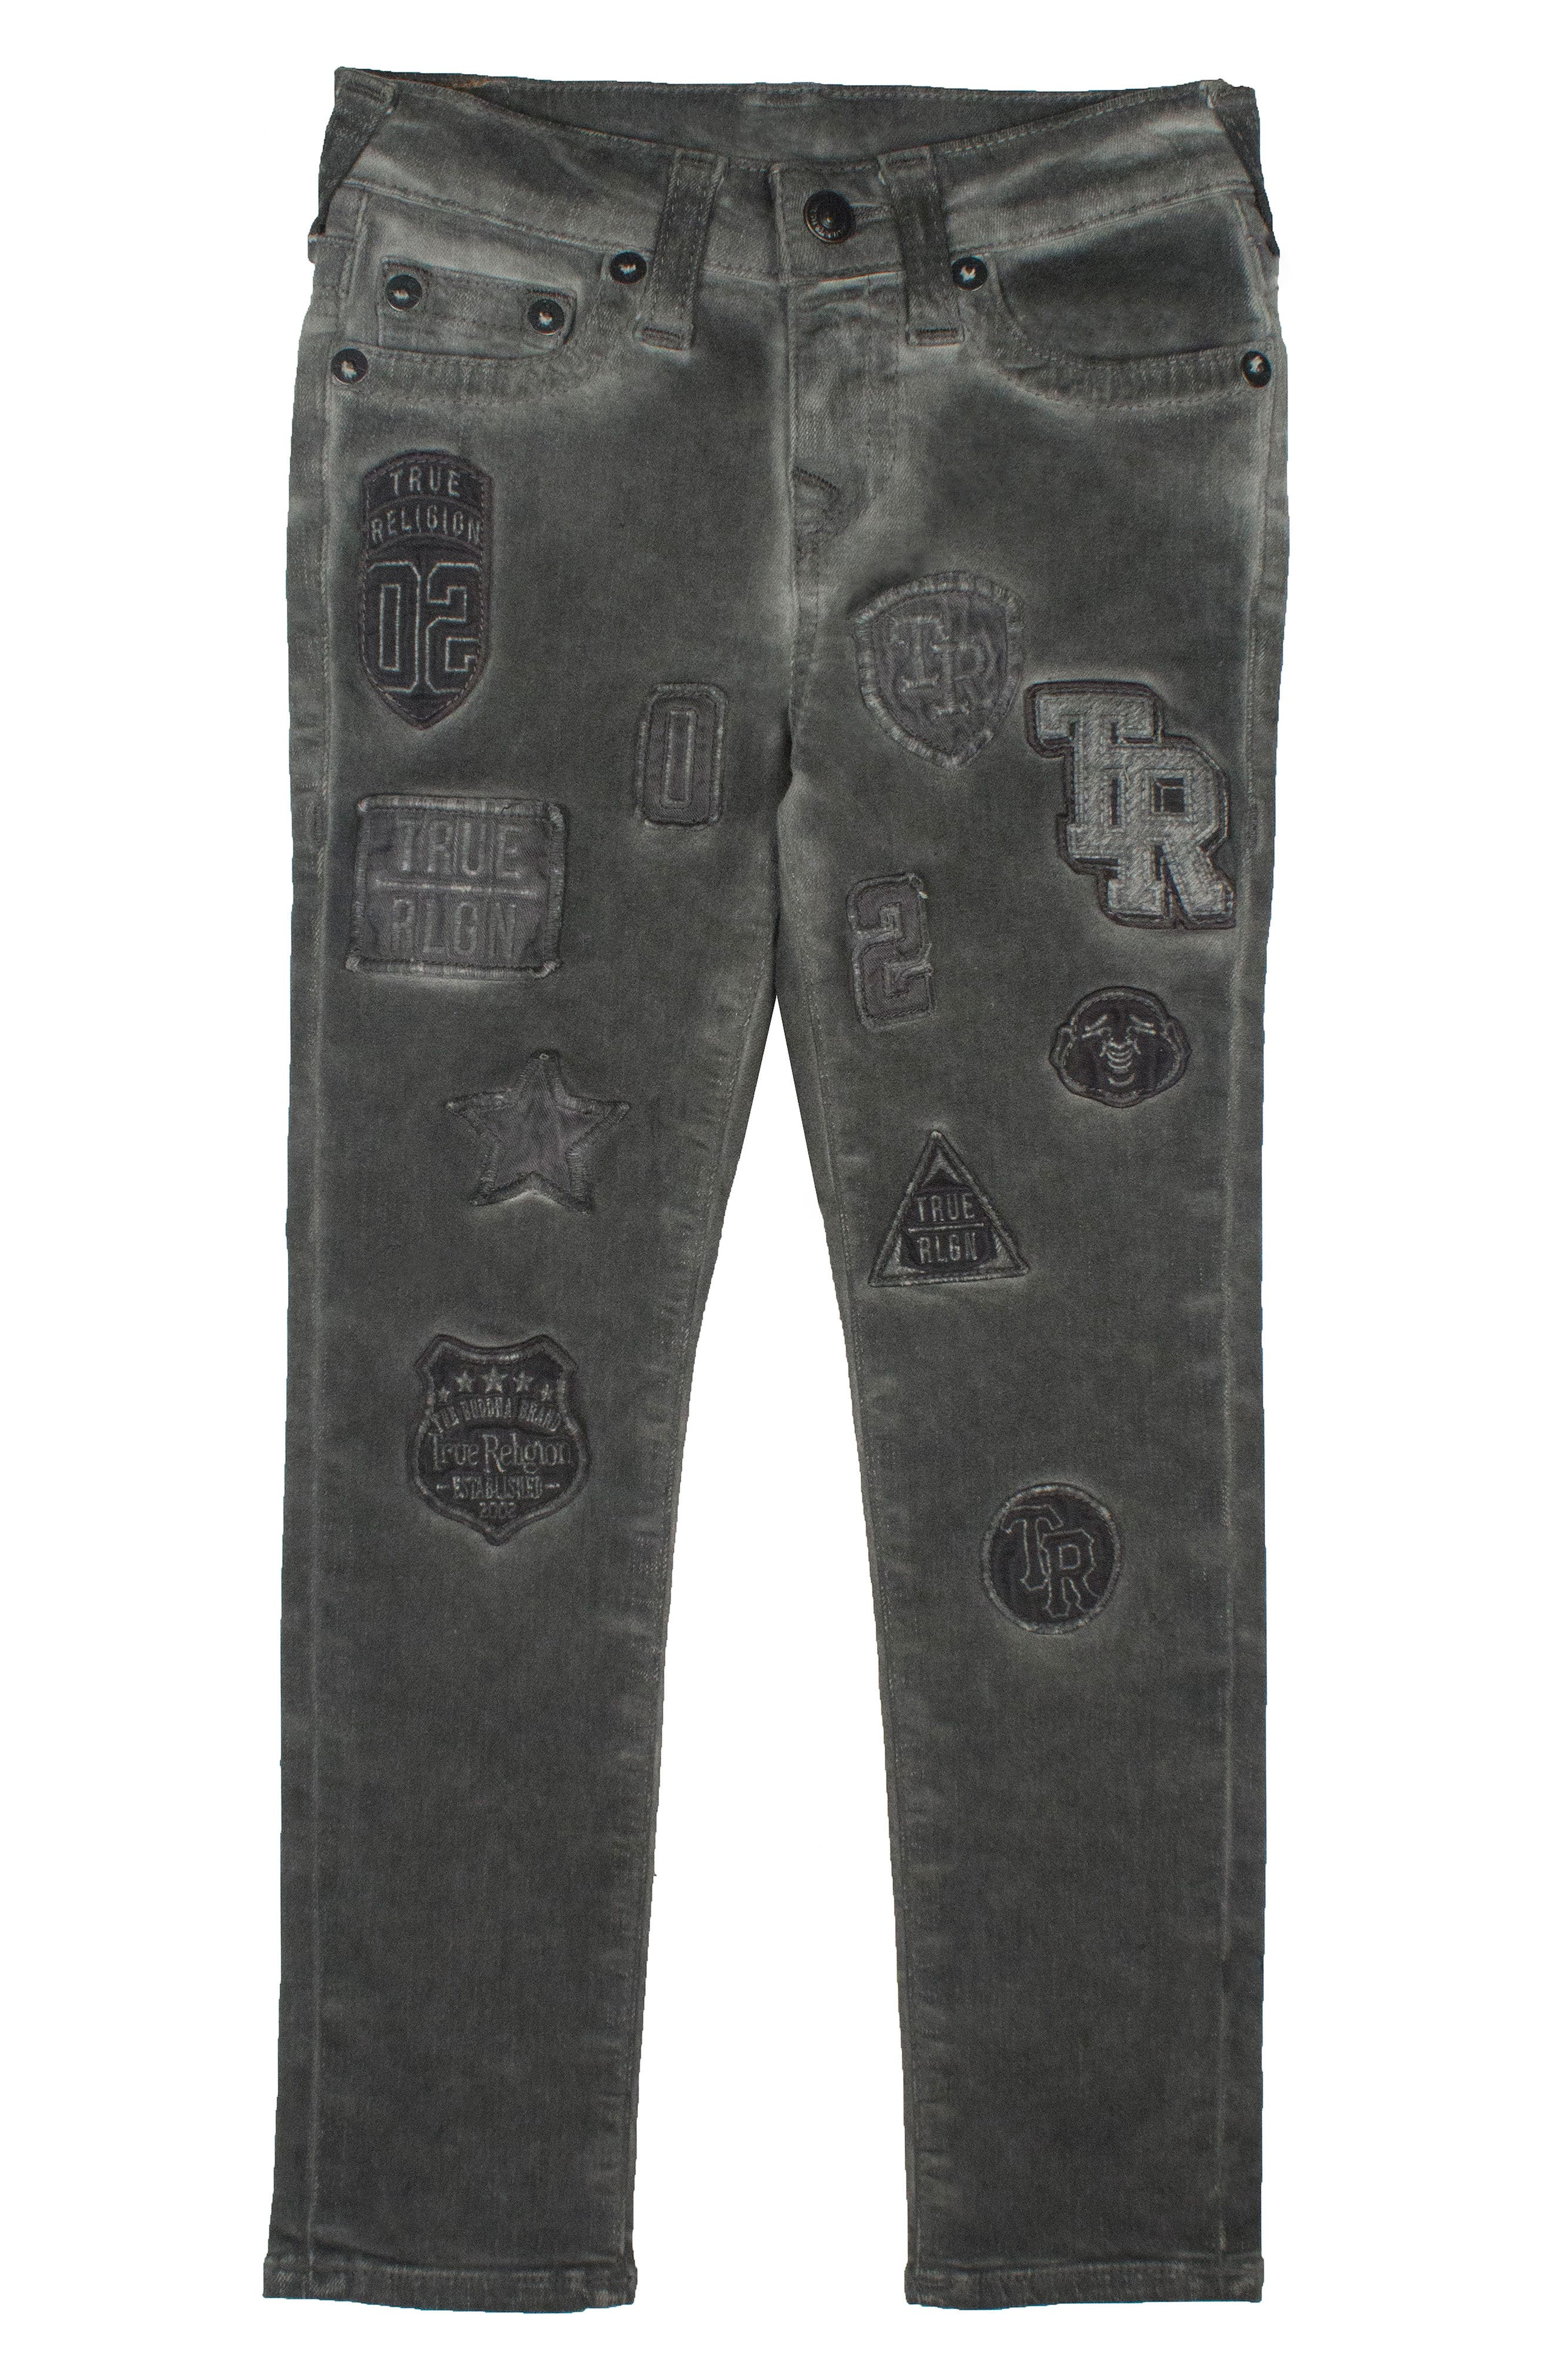 Rocco Single End Jeans,                         Main,                         color, Grey Patched